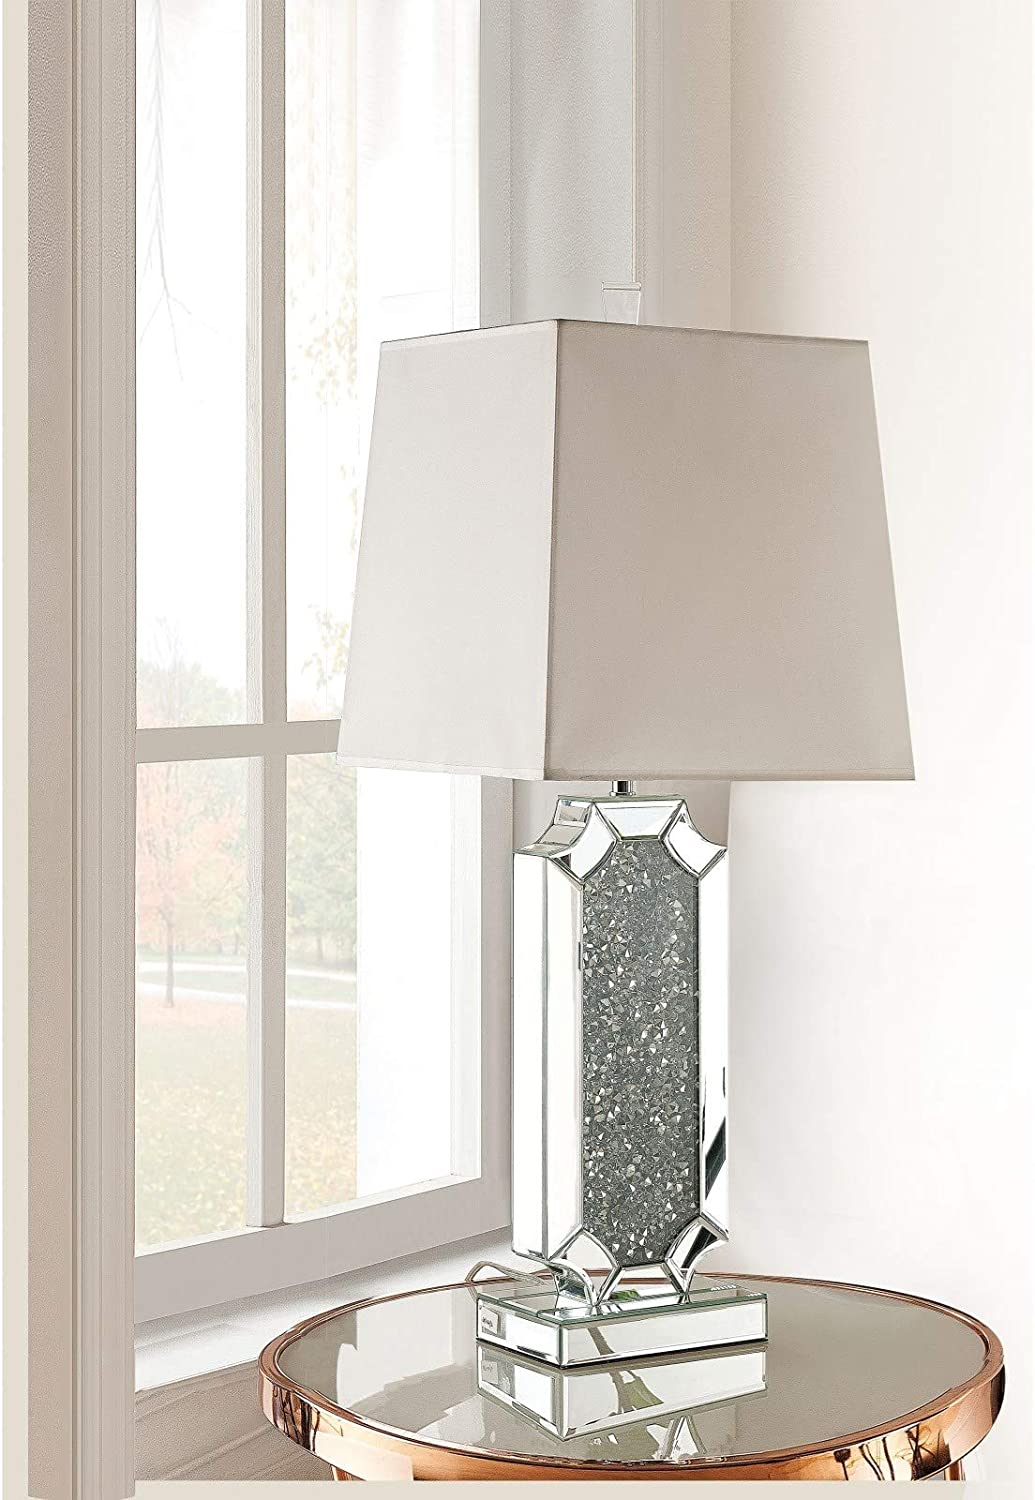 Takefuns Noralie Max 76% OFF Table Lamp in I 40216 Mirrored Diamonds Ranking TOP5 Faux